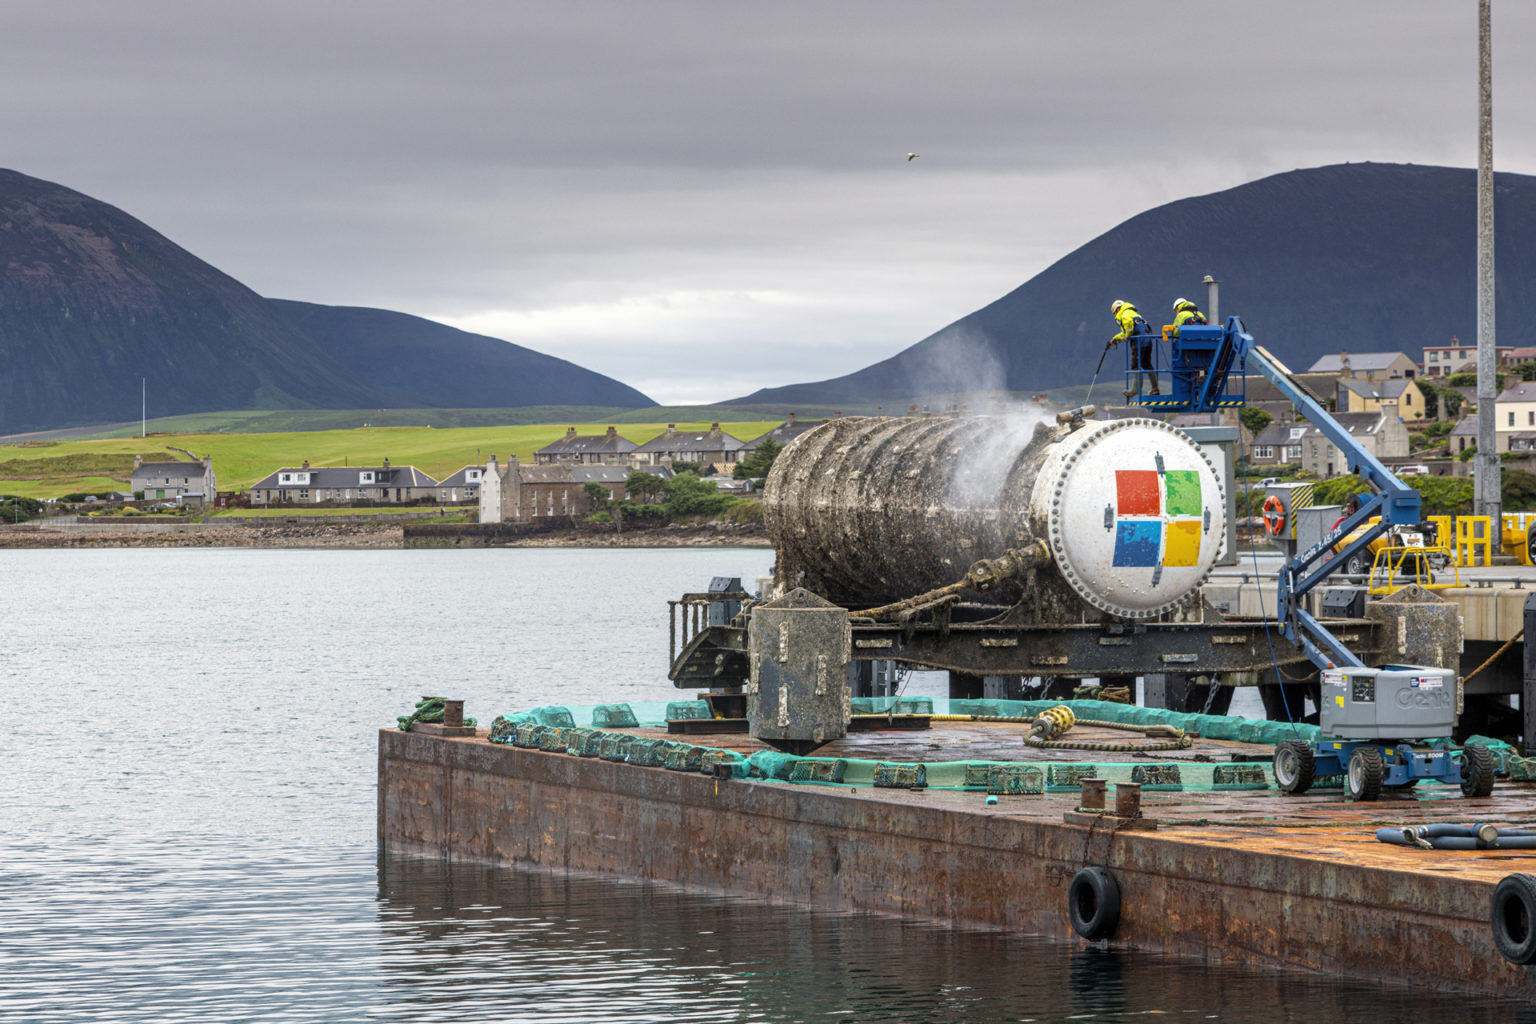 Project Natick, Vessel retrieval Stromness, Orkney. Microsoft - Tuesday 7th to Wednesday 15th of July 2020